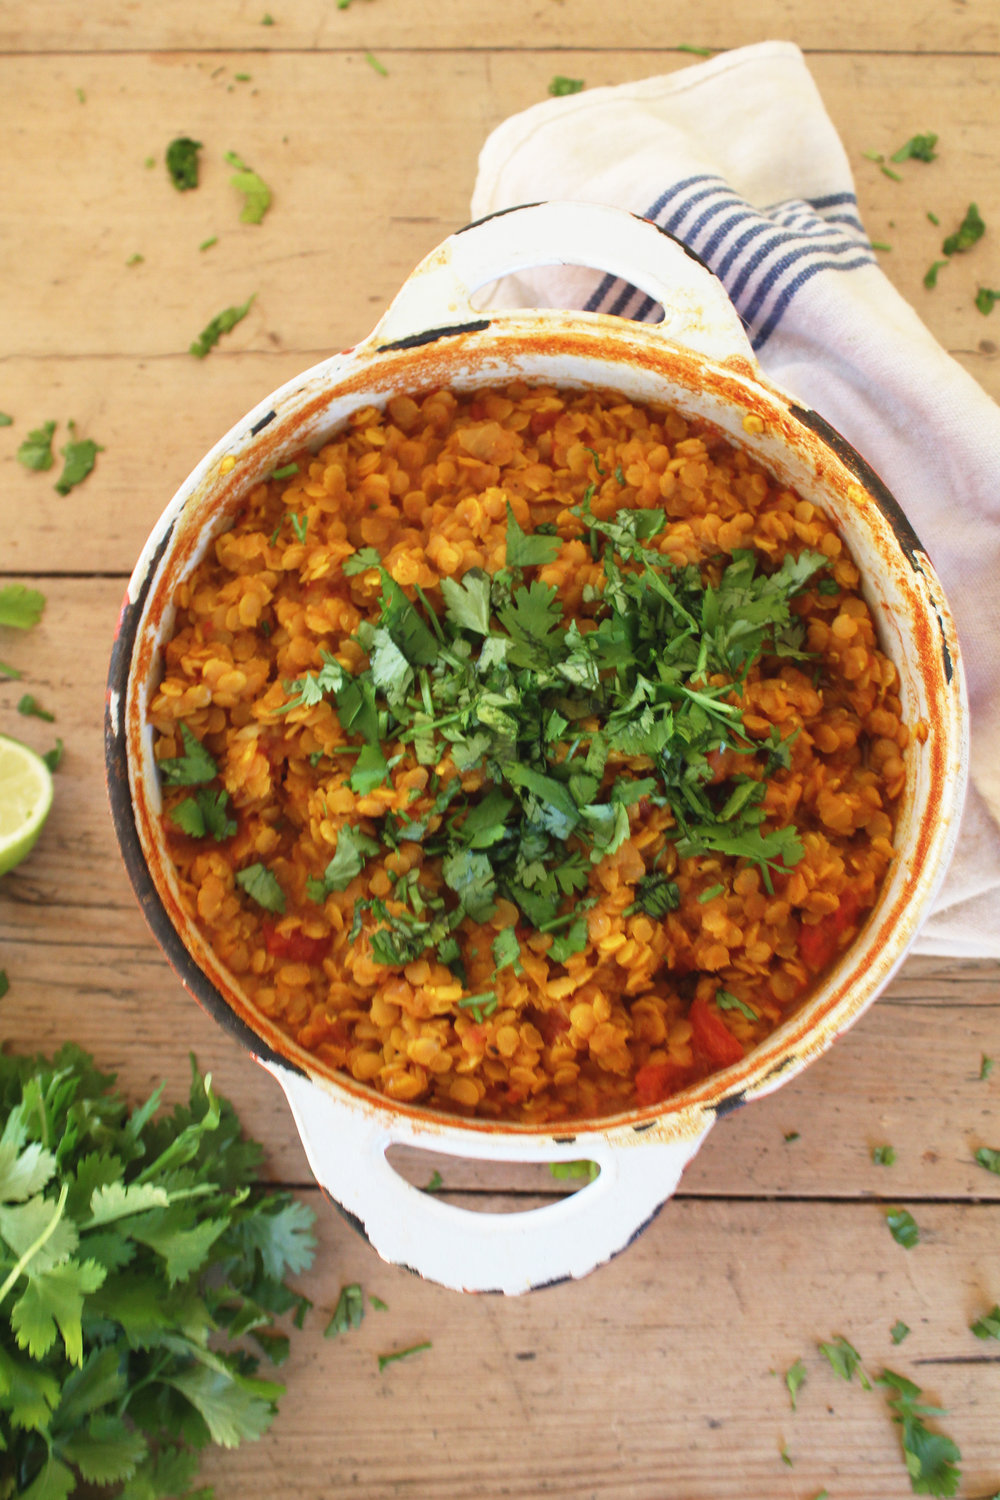 A household favourite, red lentil dahl is not only cheap at 47p per serving, but full of flavour. - prep time 5 mins     total time 30-60 mins      serves 4